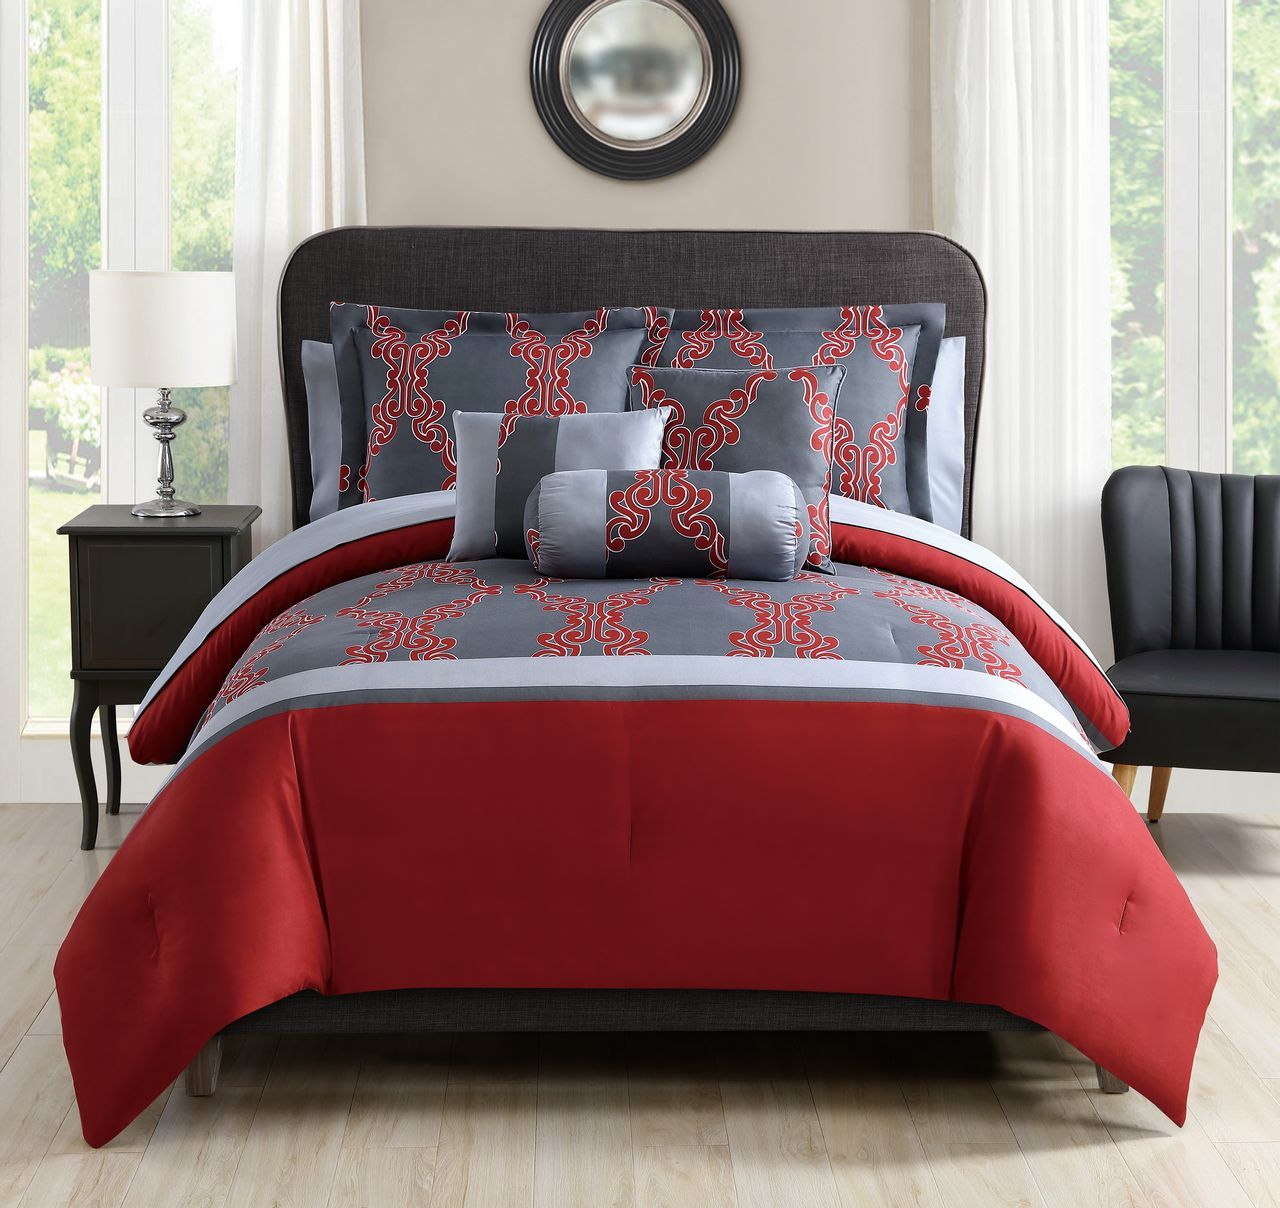 design amazing ideas cool set comforter and grey red